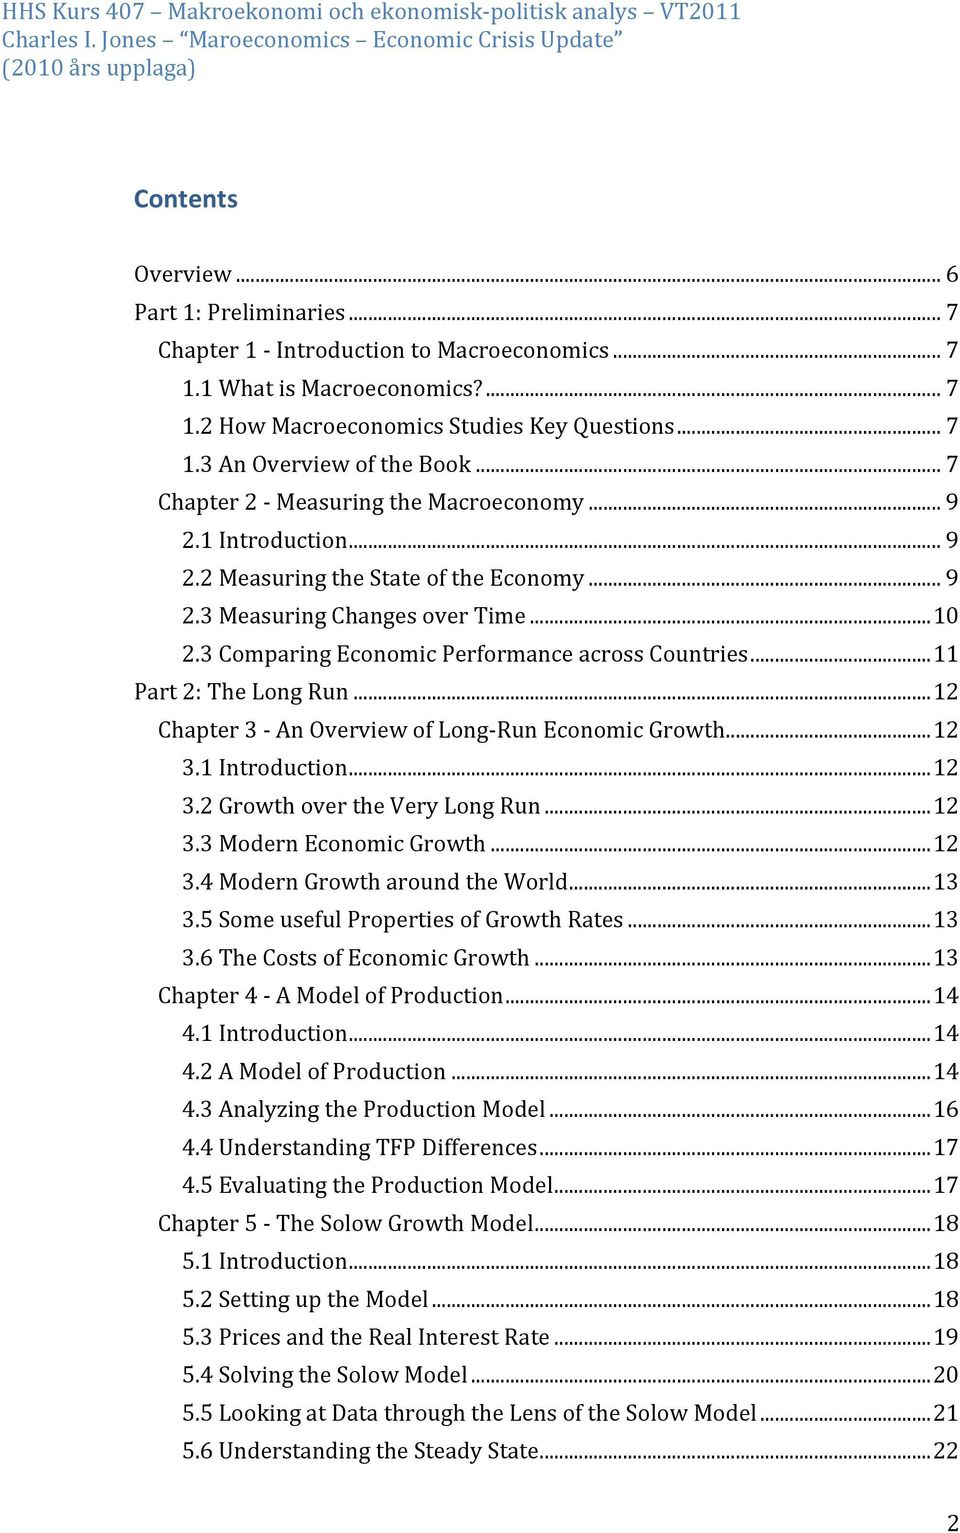 3 Comparing Economic Performance across Countries... 11 Part 2: The Long Run... 12 Chapter 3 - An Overview of Long- Run Economic Growth... 12 3.1 Introduction... 12 3.2 Growth over the Very Long Run.